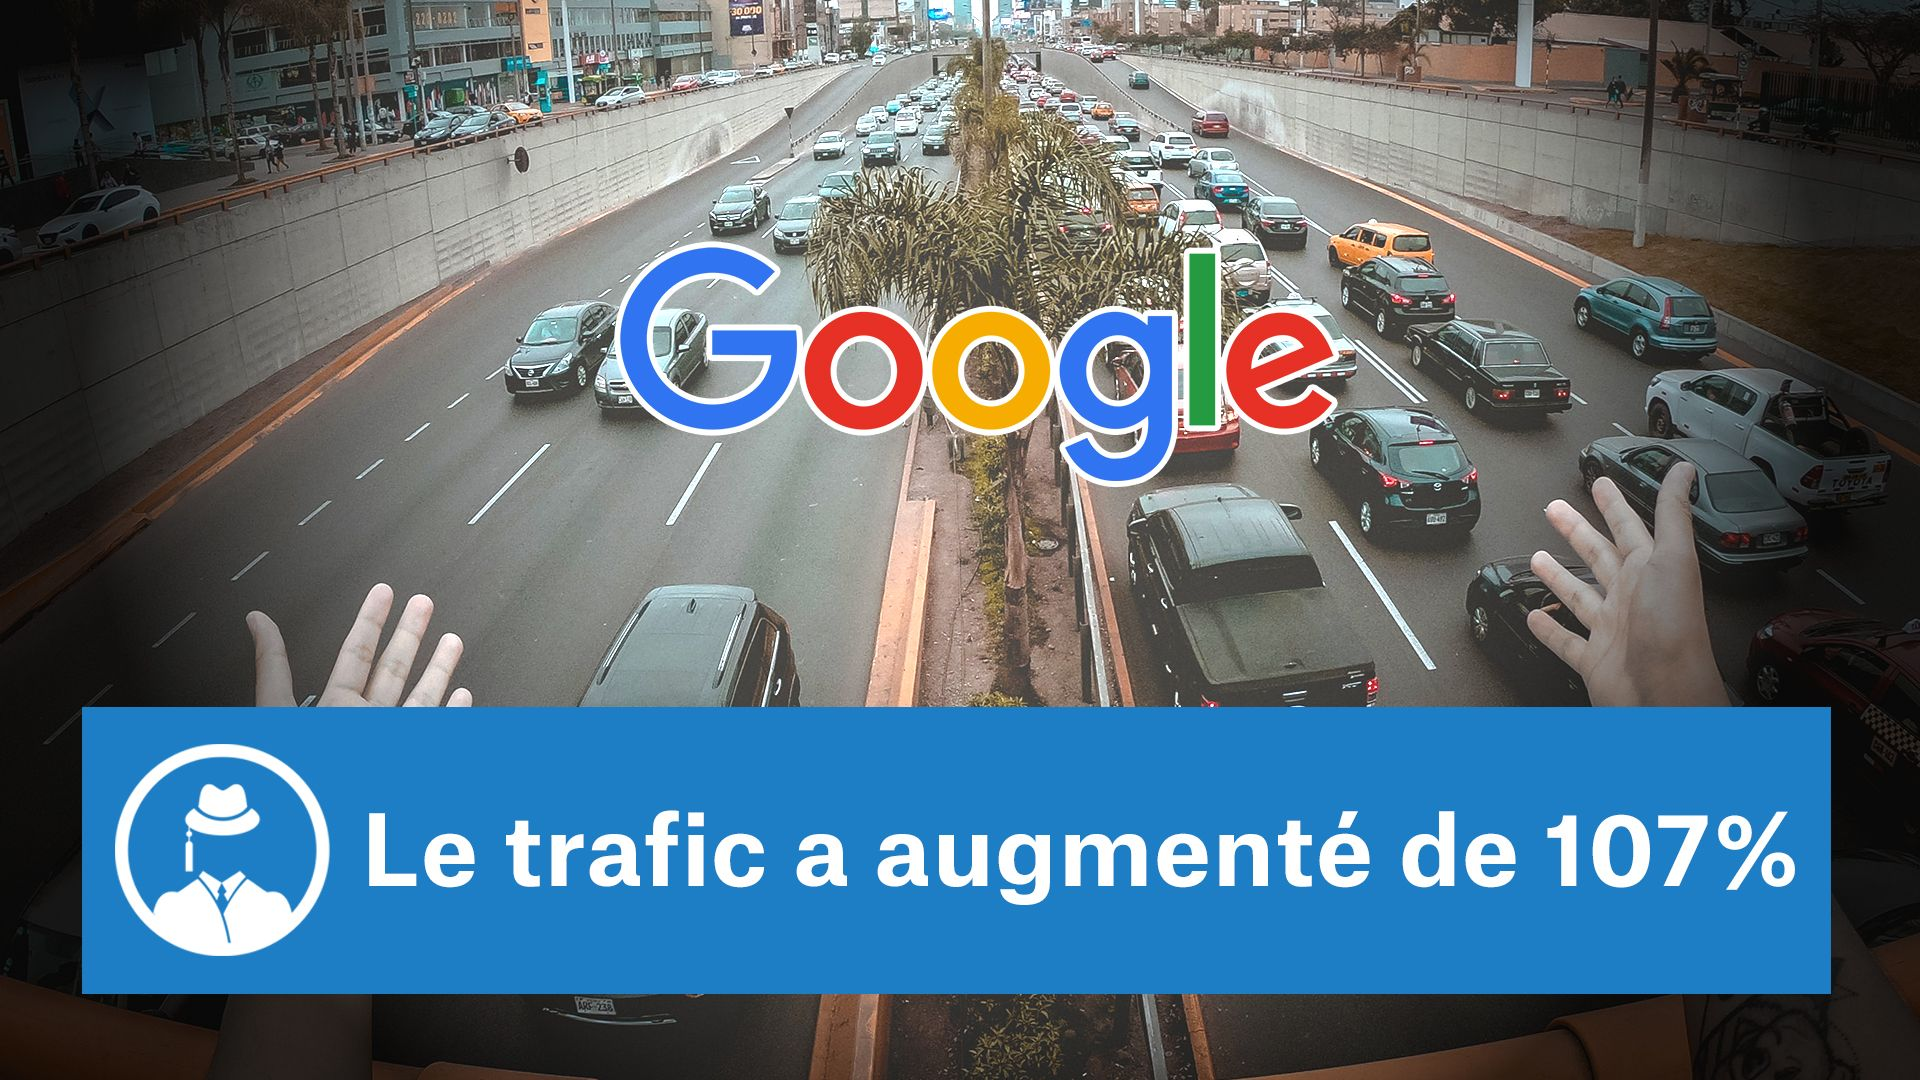 Le trafic a augmenté de 107% #GrowthHacking #WebMarketing #FormationGrowthHacking #CentreDeFormationFrance #TunnelAARRR #AARRR #SocialMedia #CommunityManagement #SEO #SiteWeb